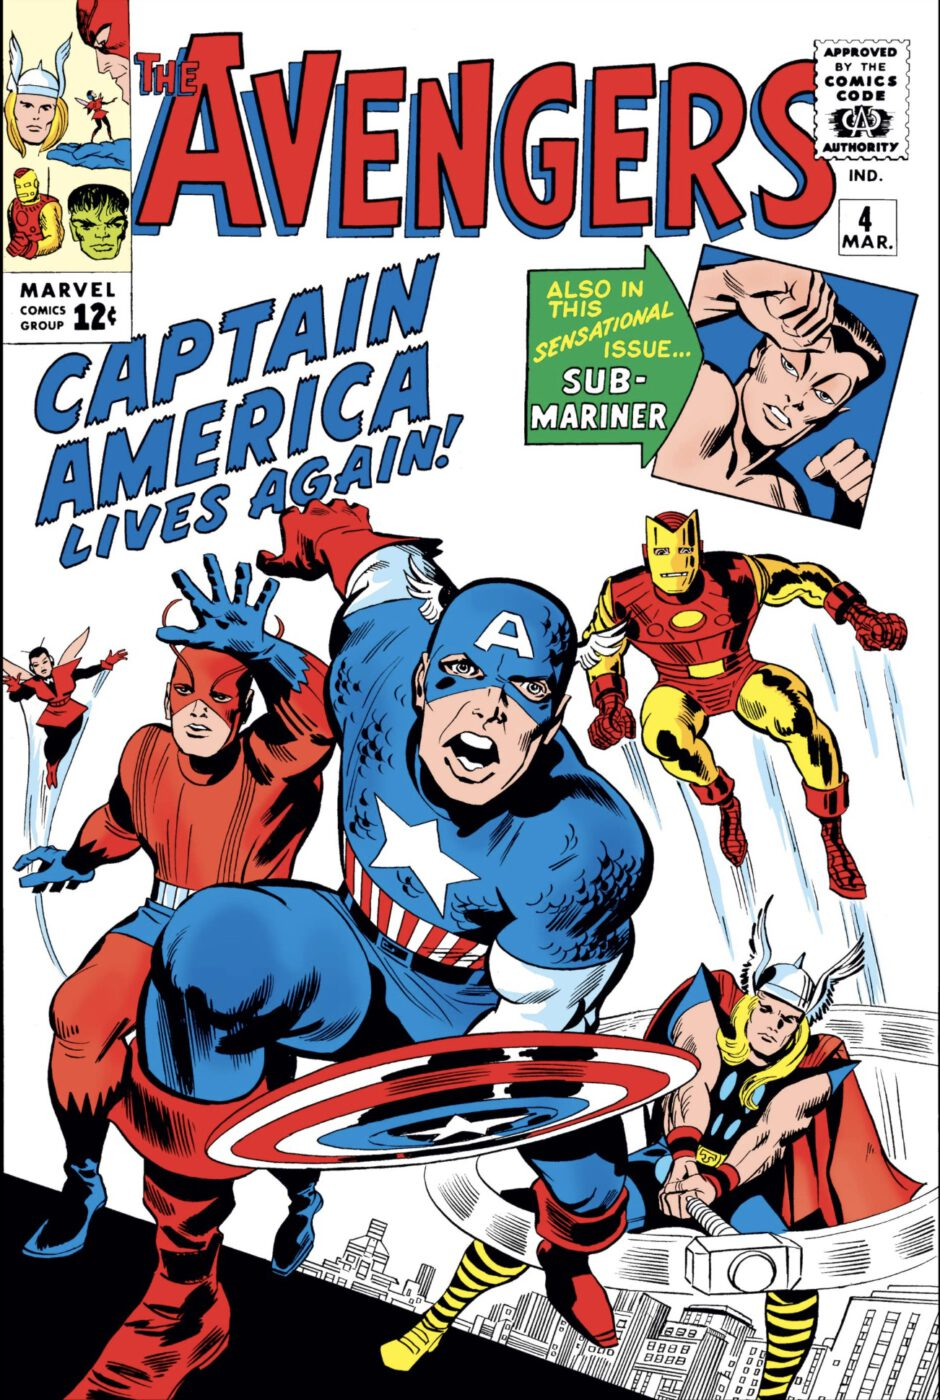 Avengers captain america lives again comic cover